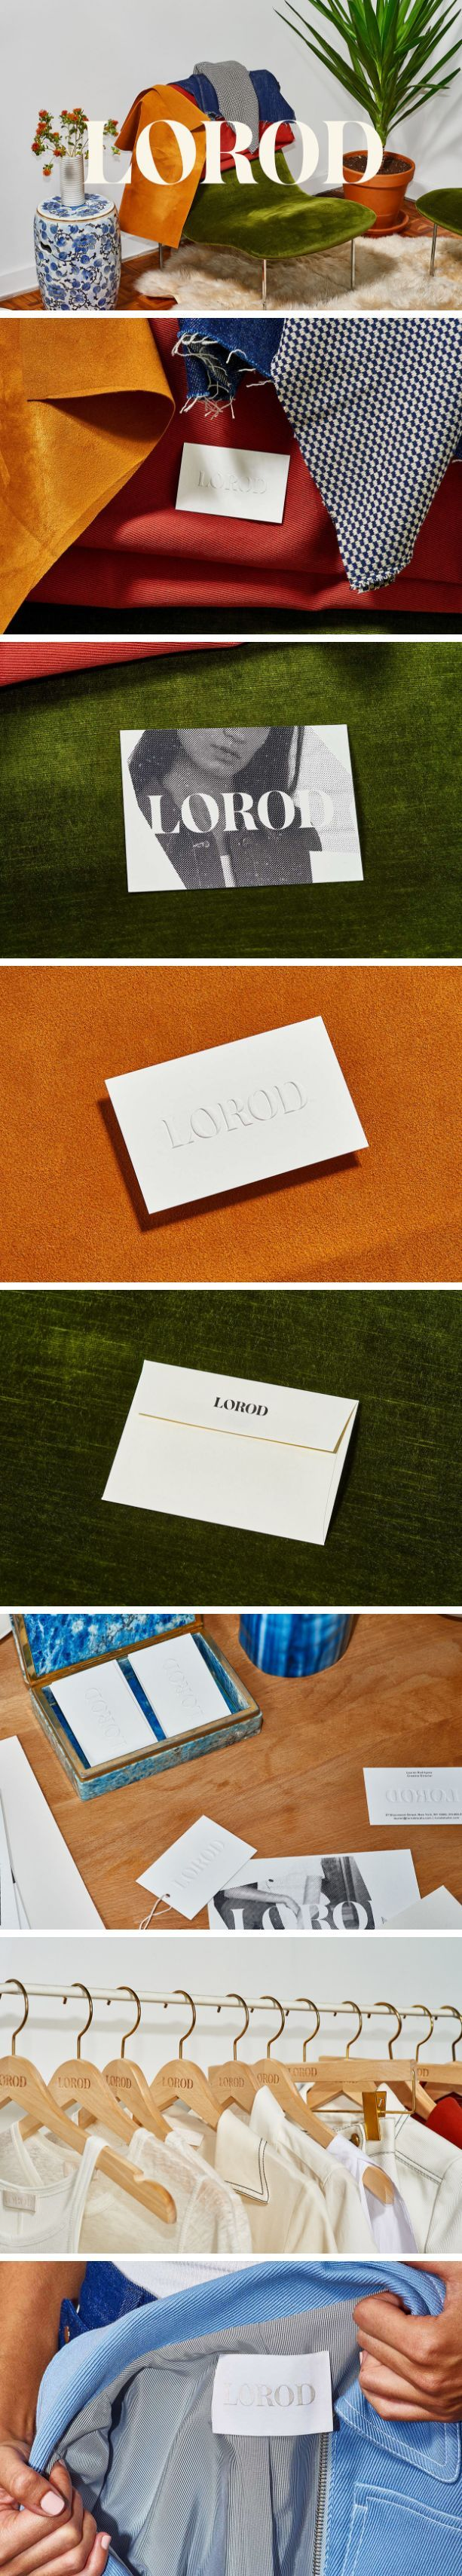 Brand Identity & Web Design for LOROD by Pentagram. If you're a user experience professional, listen to The UX Blog Podcast on iTunes.